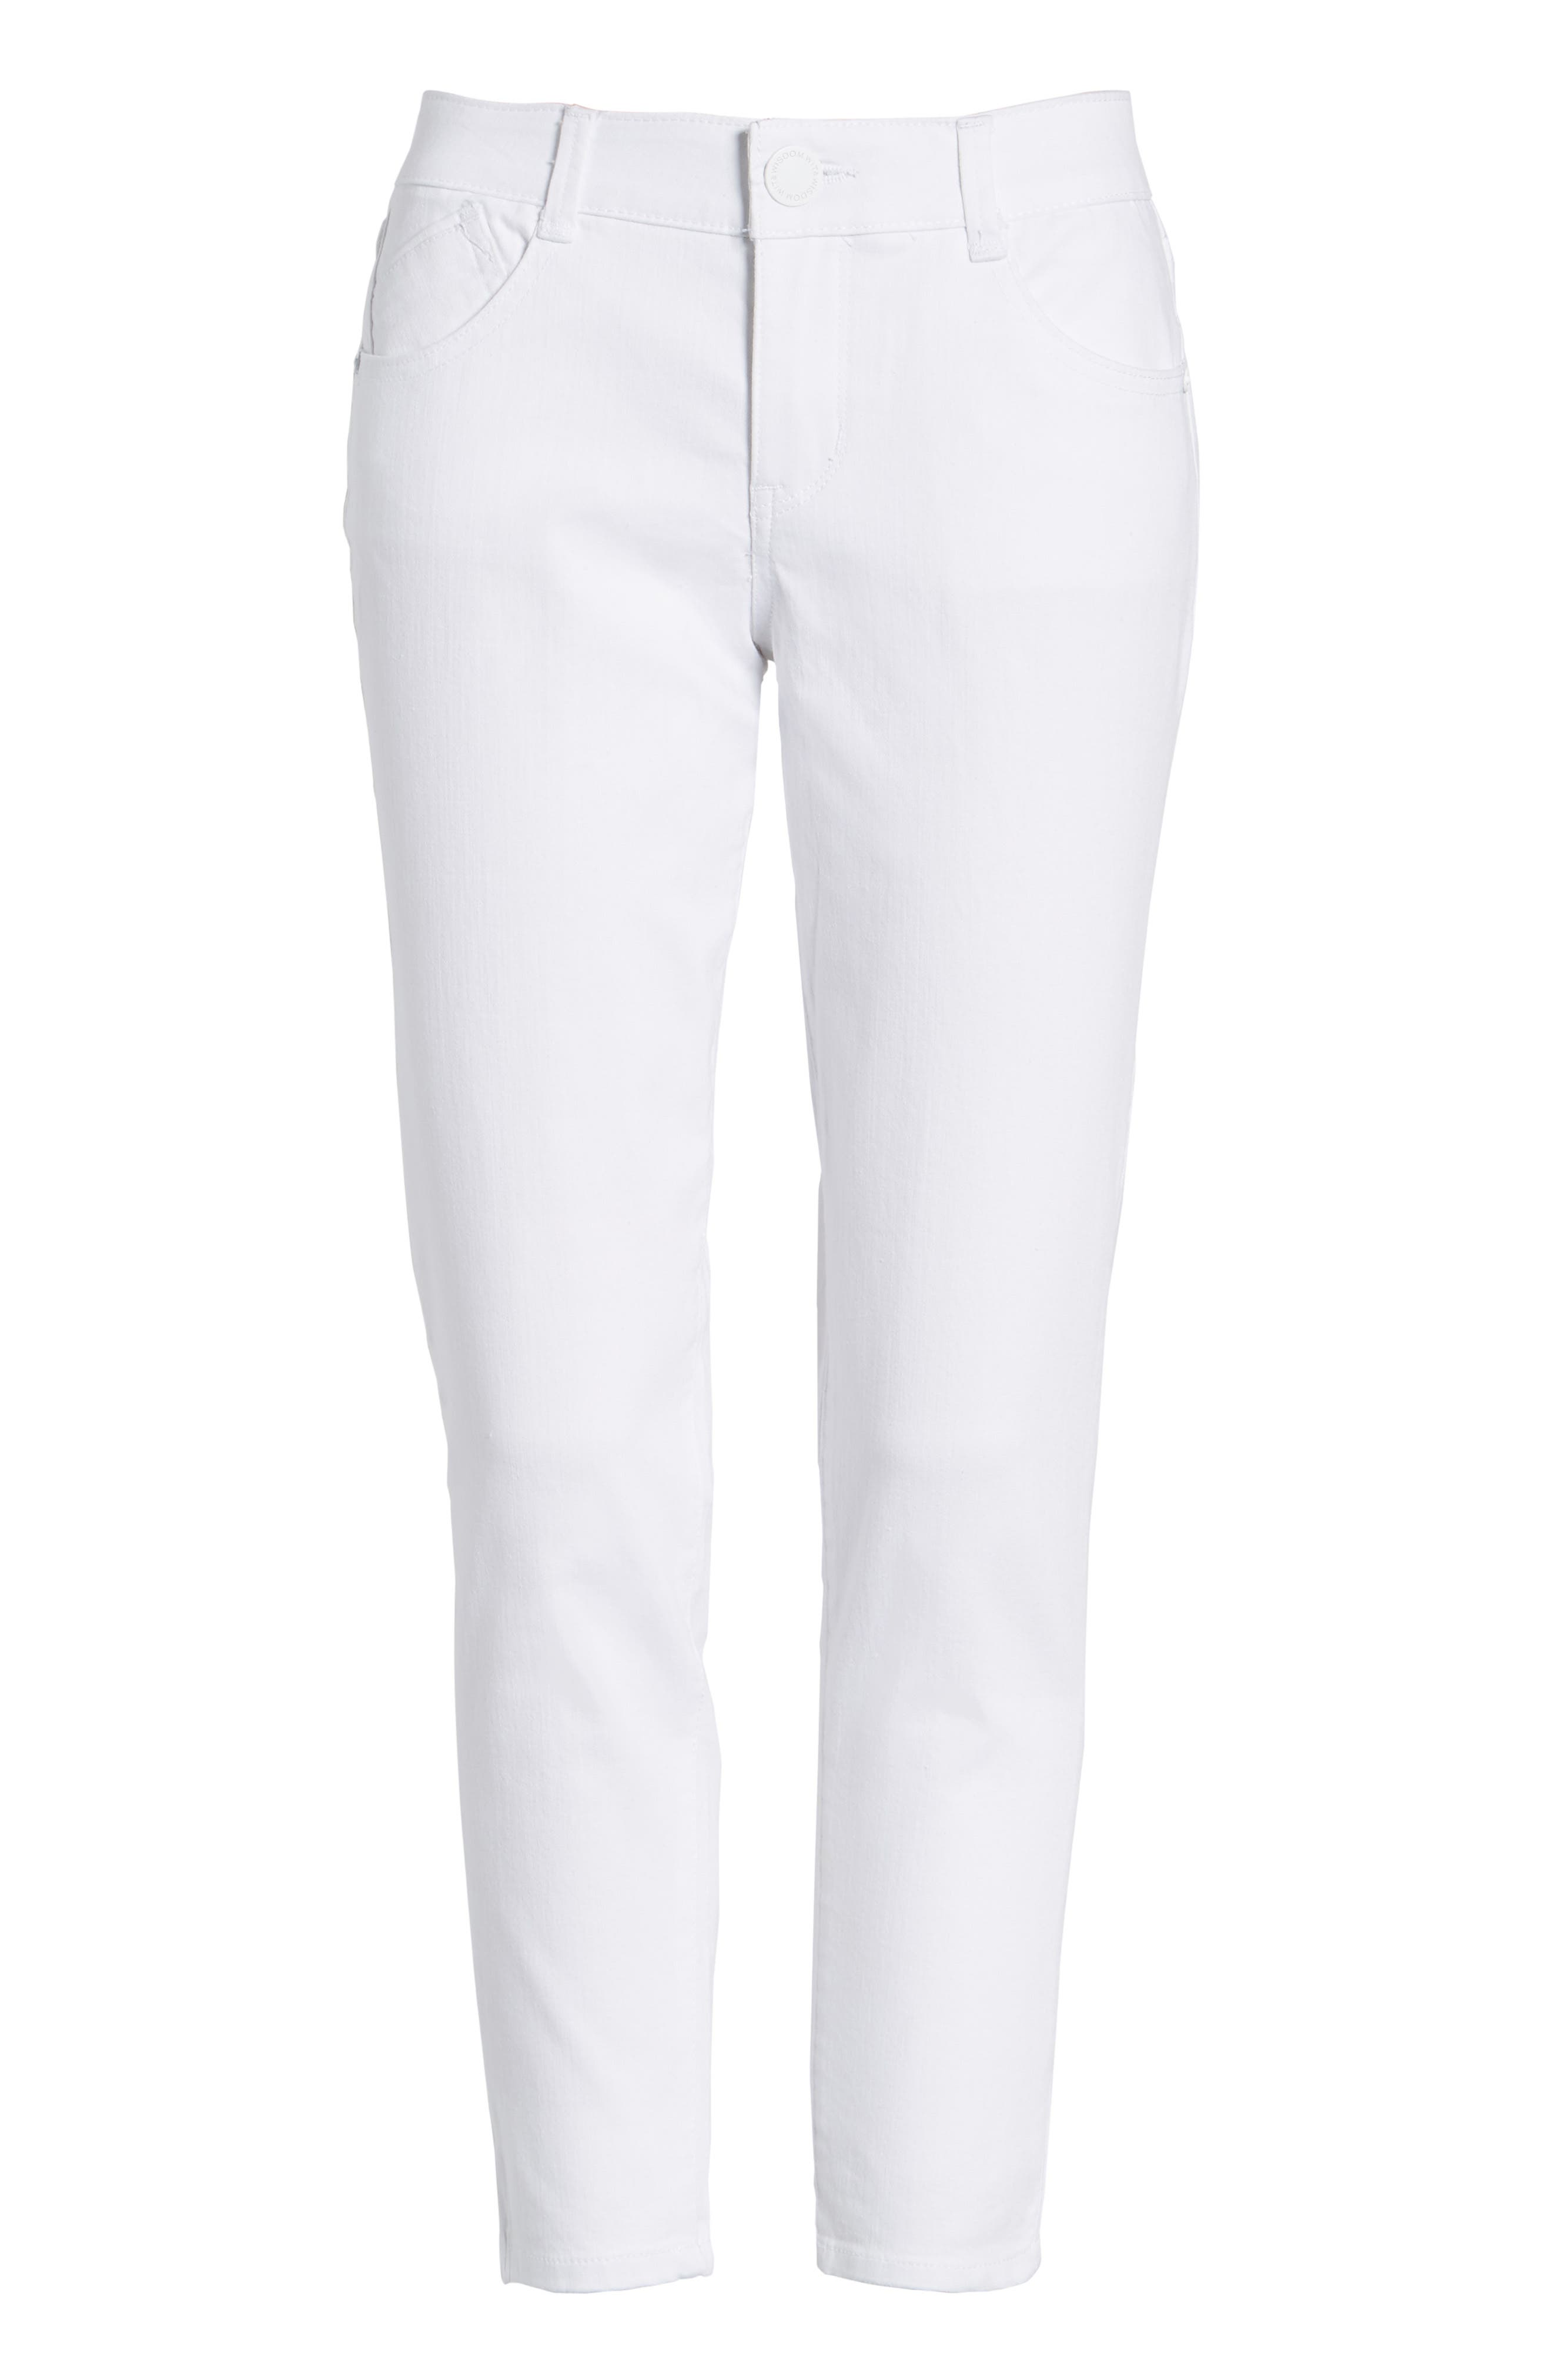 Ab-solution Skinny Crop Jeans,                             Alternate thumbnail 6, color,